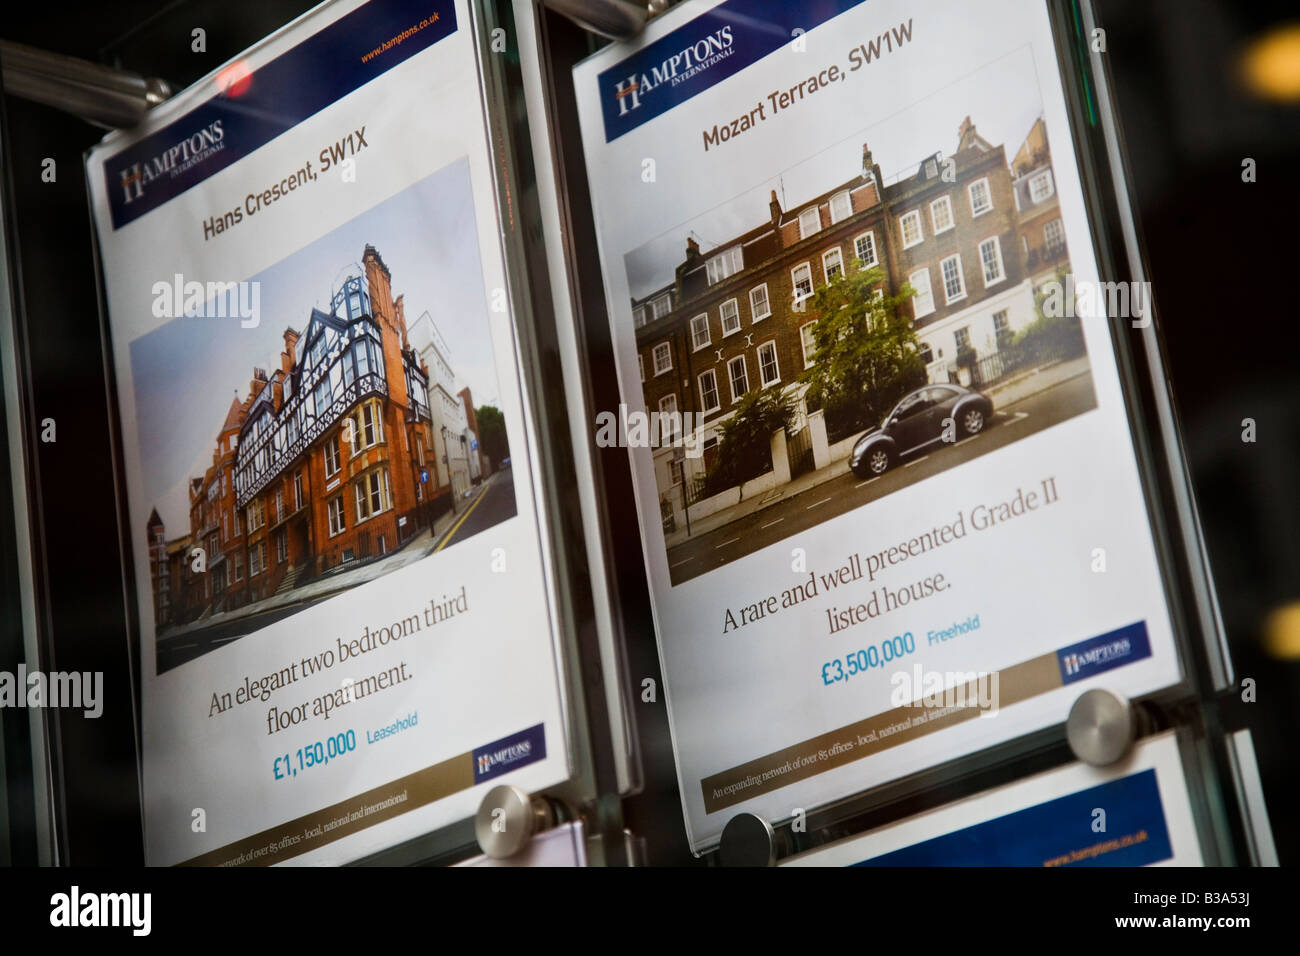 Hamtons estate agents in Kensington and Chelsea exclusive area of London UK - Stock Image